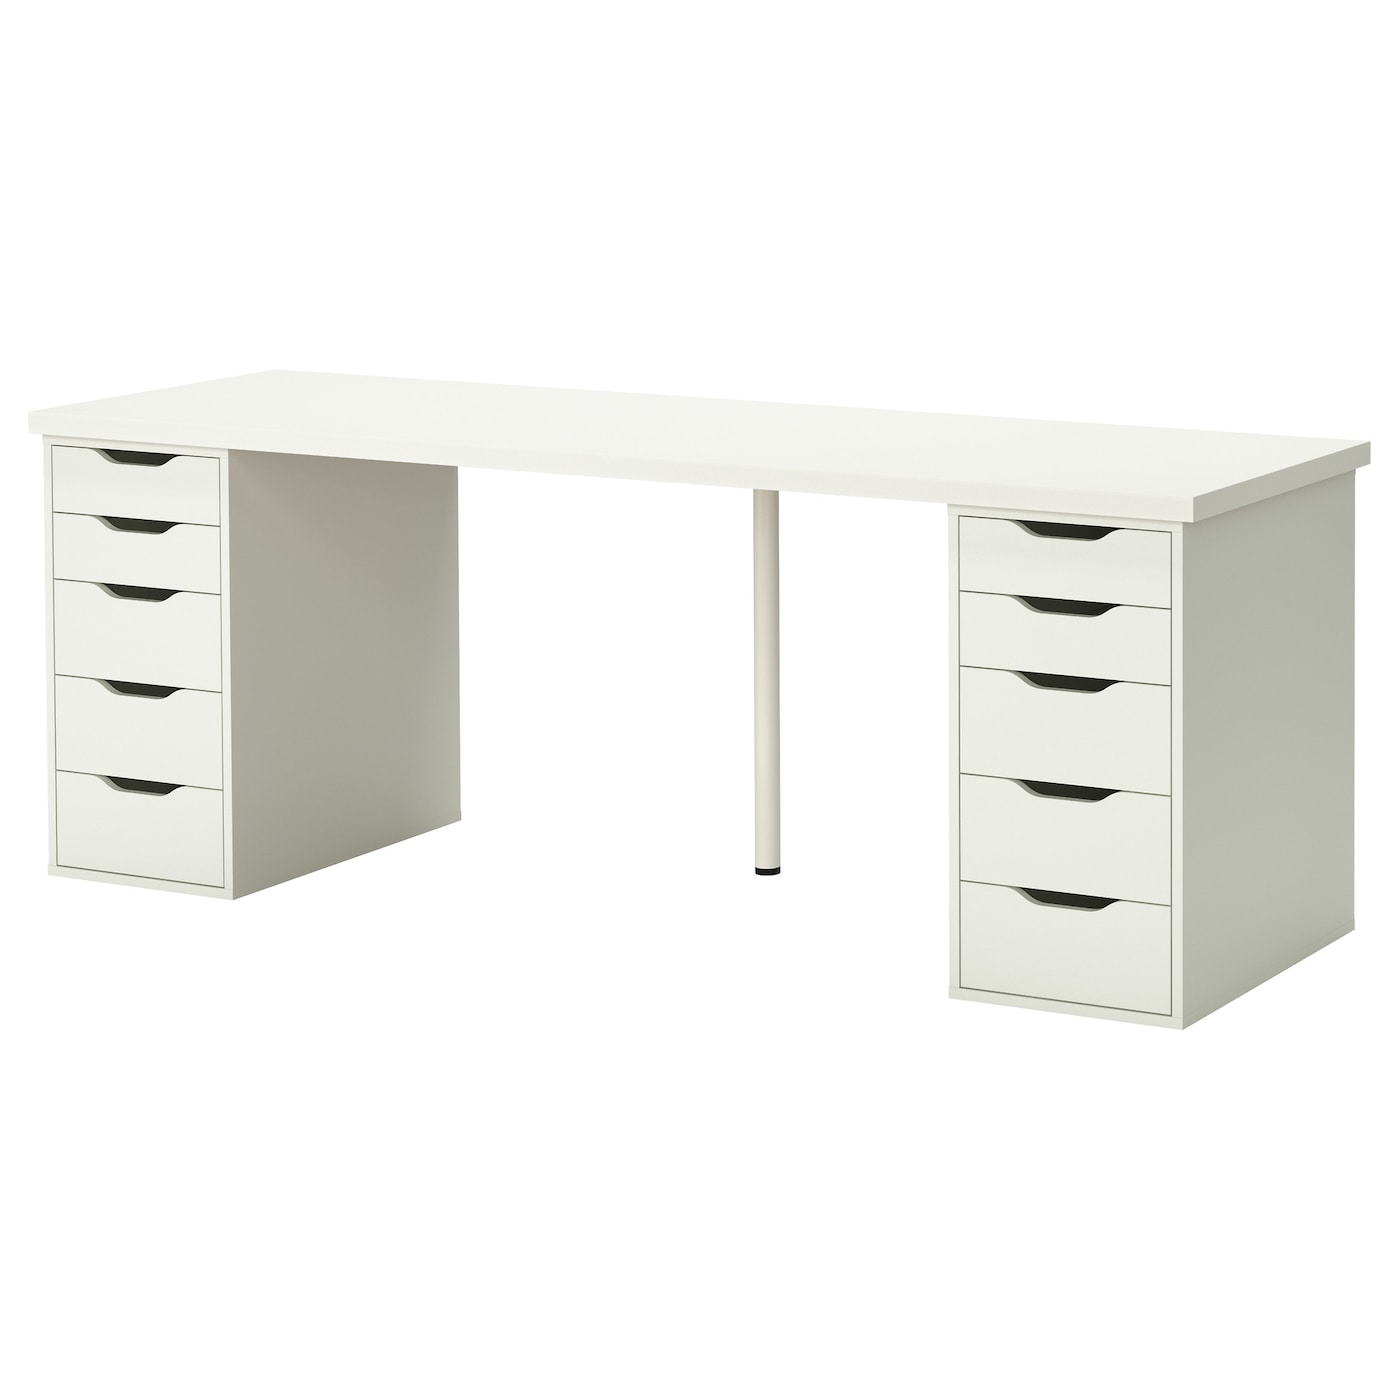 ALEX LINNMON Table White 200x60 cm IKEA